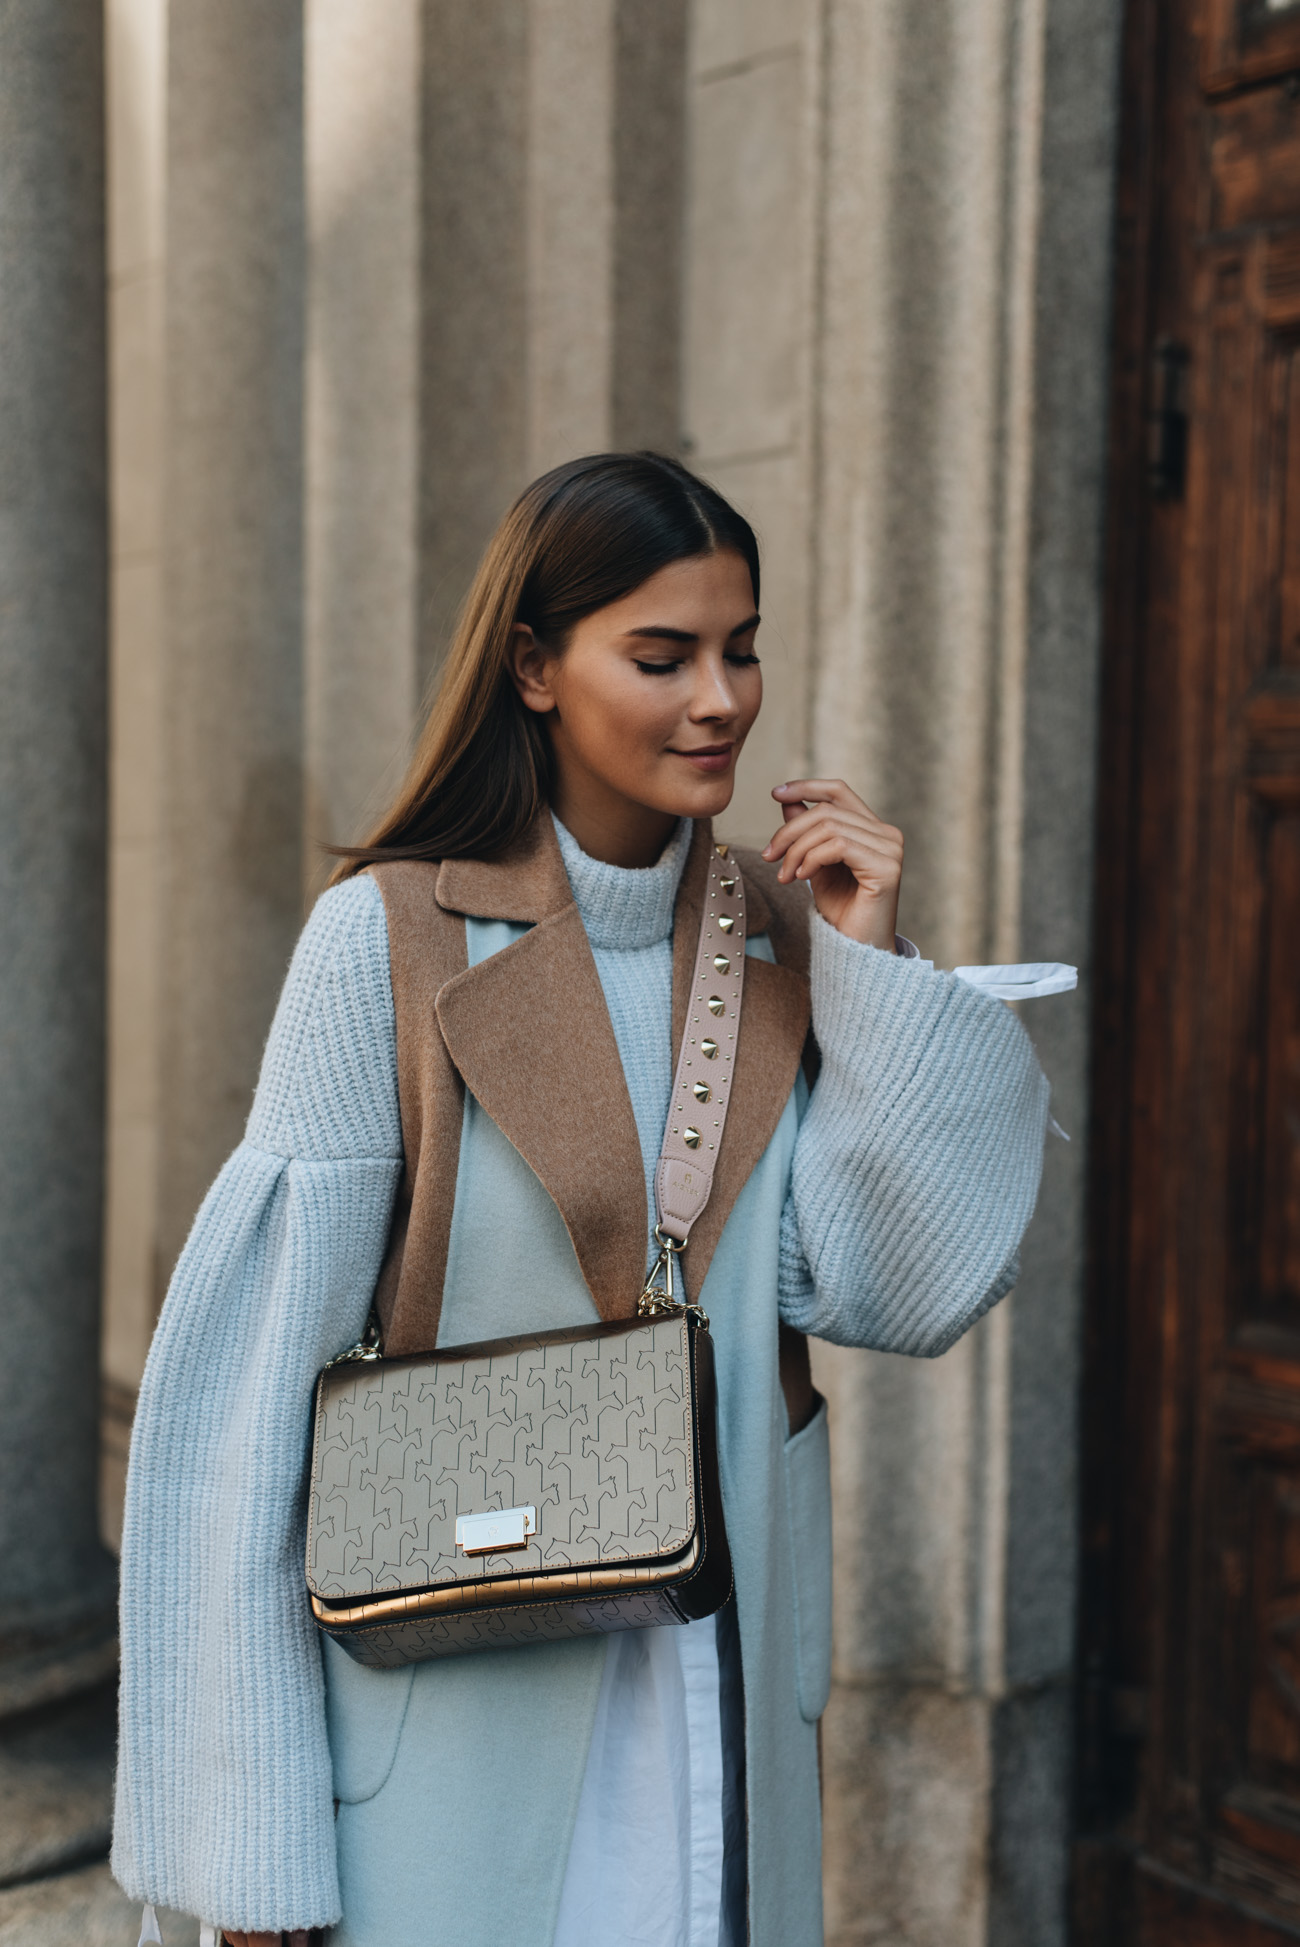 german-fashion-and-lifestyle-blogger-influencer-nina-schwichtenberg-fashiioncarpet